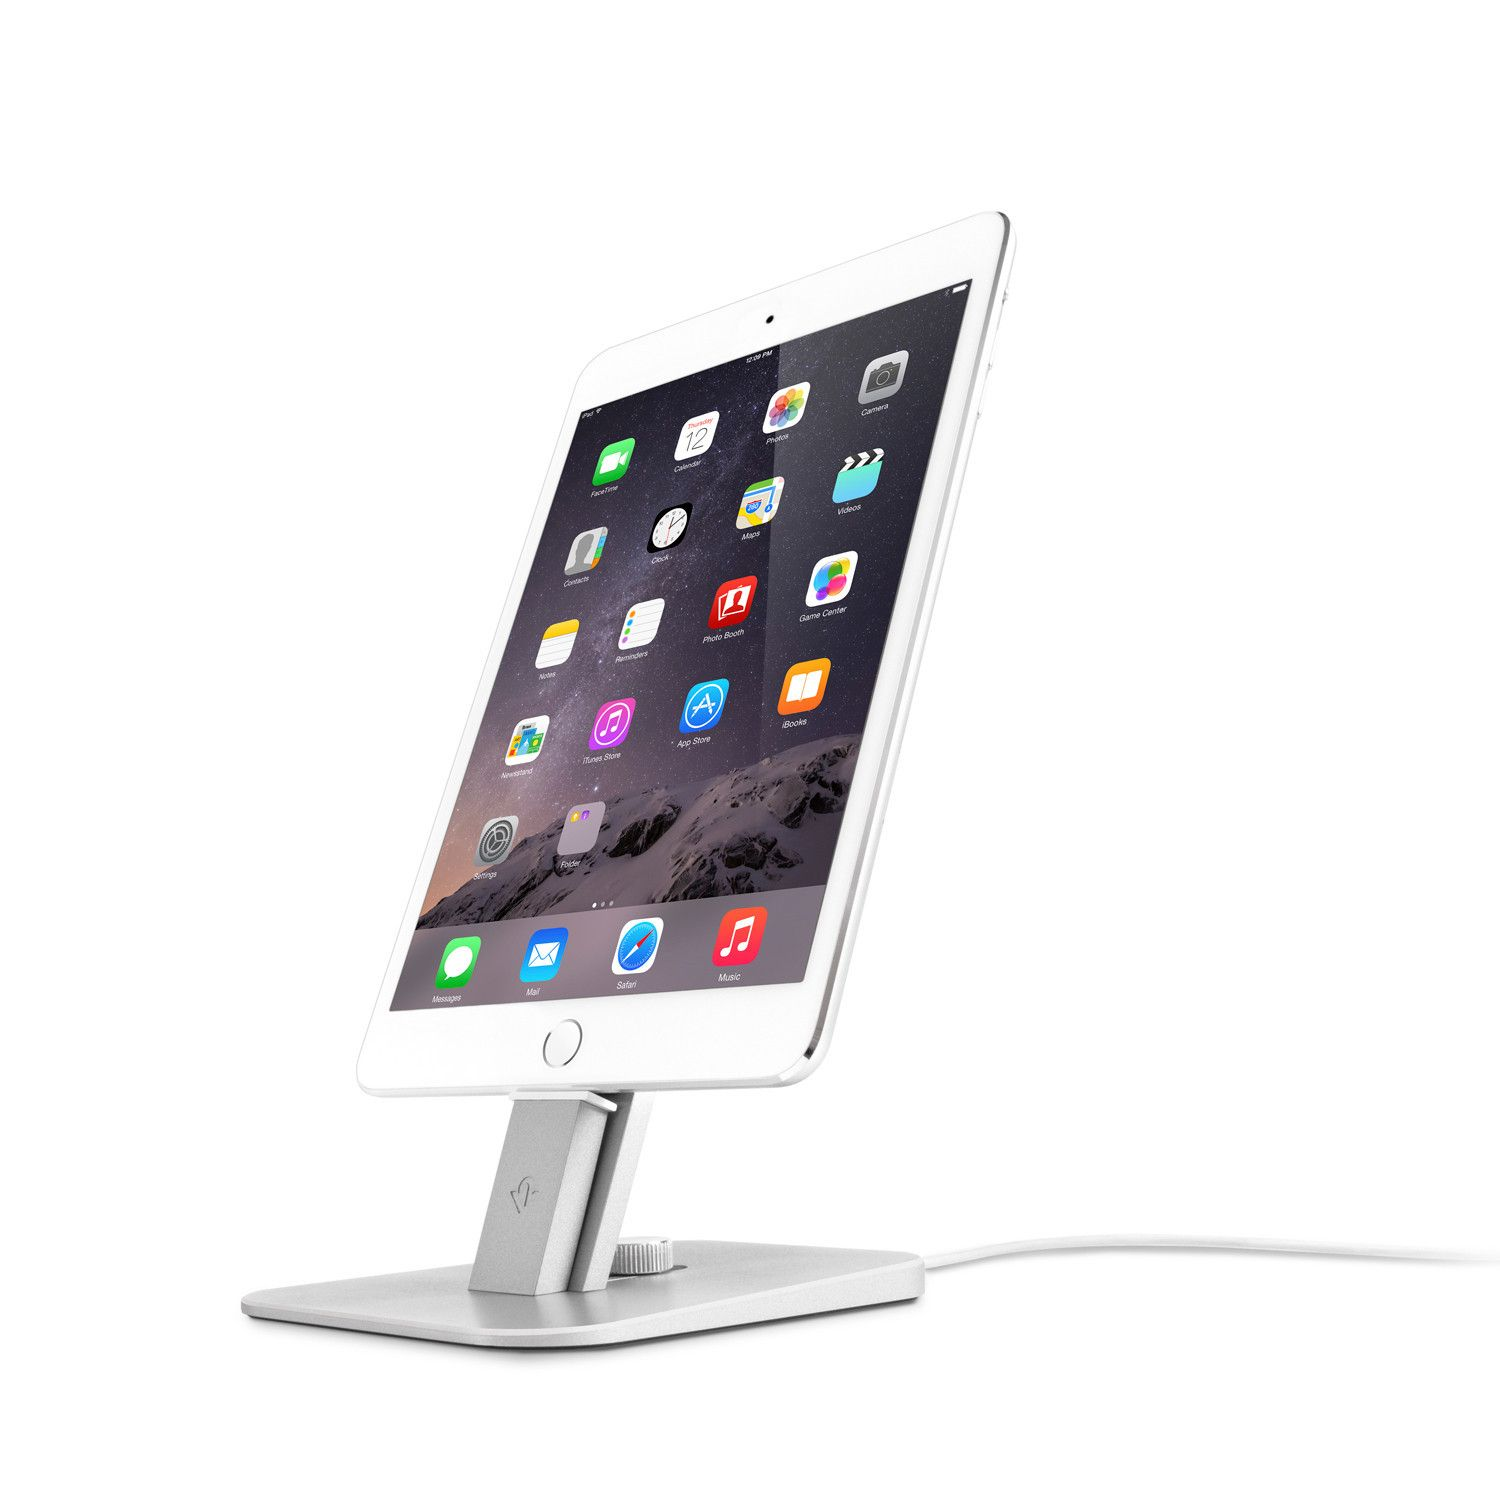 HiRise Deluxe for iPhone/iPad (Silver)